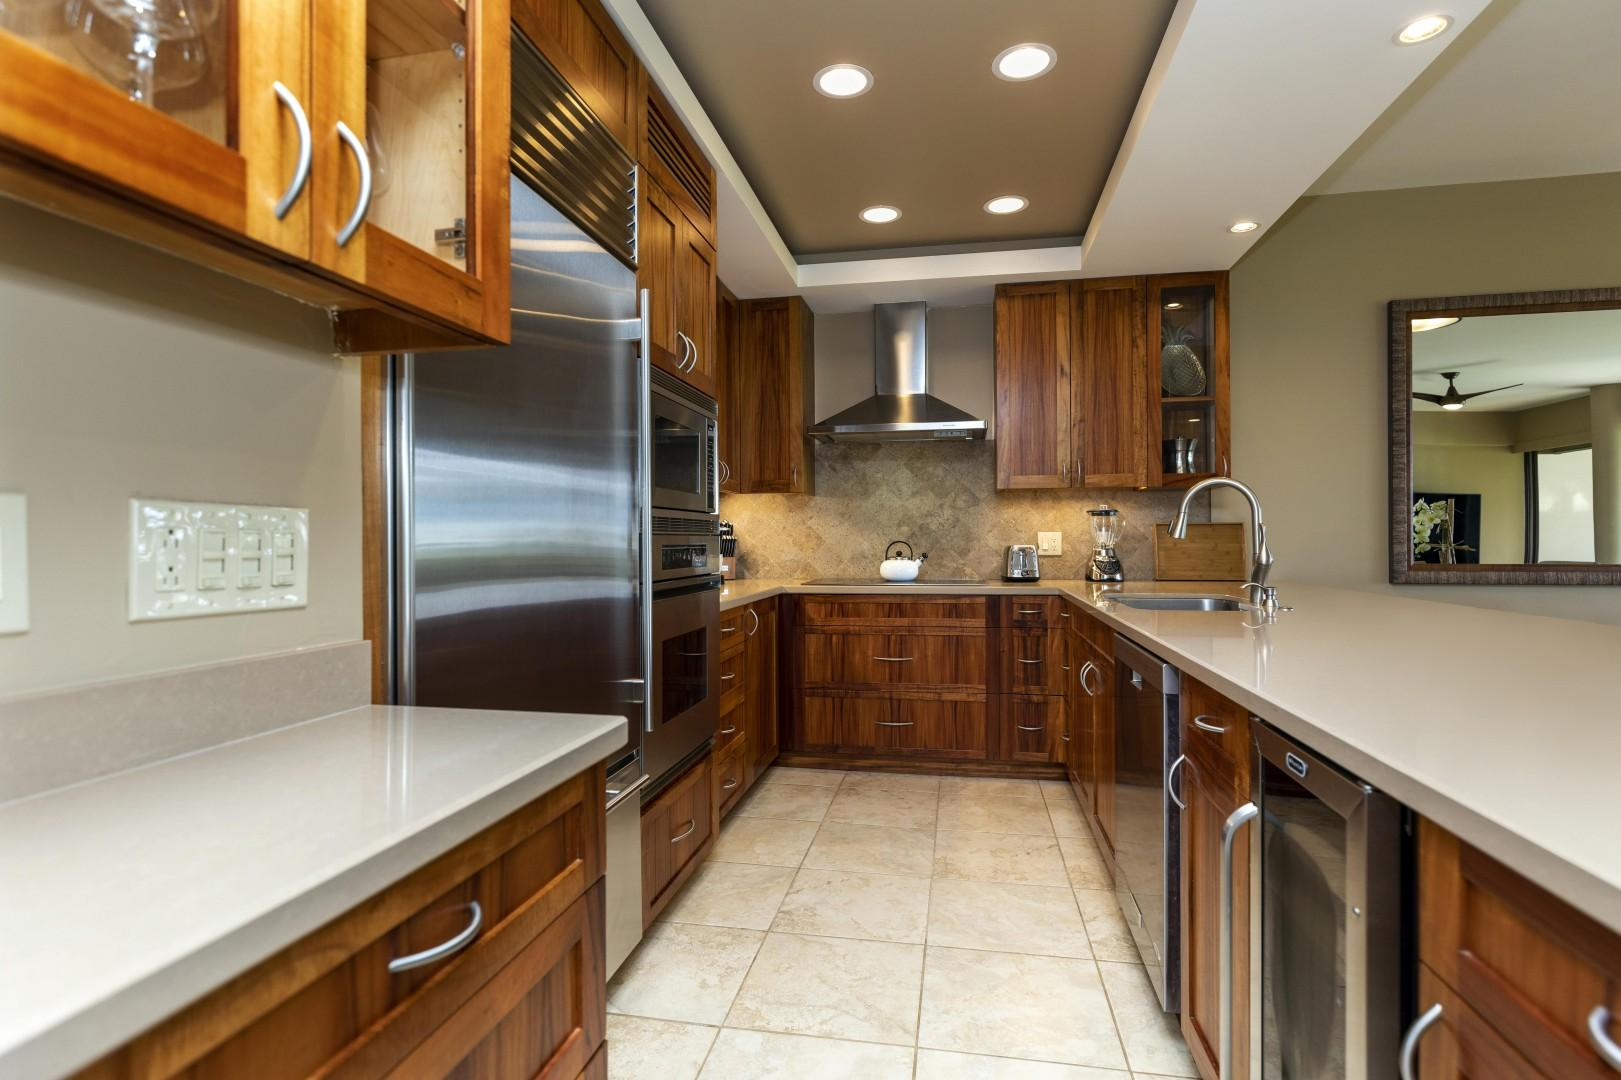 A gormet kitchen with everything you need.